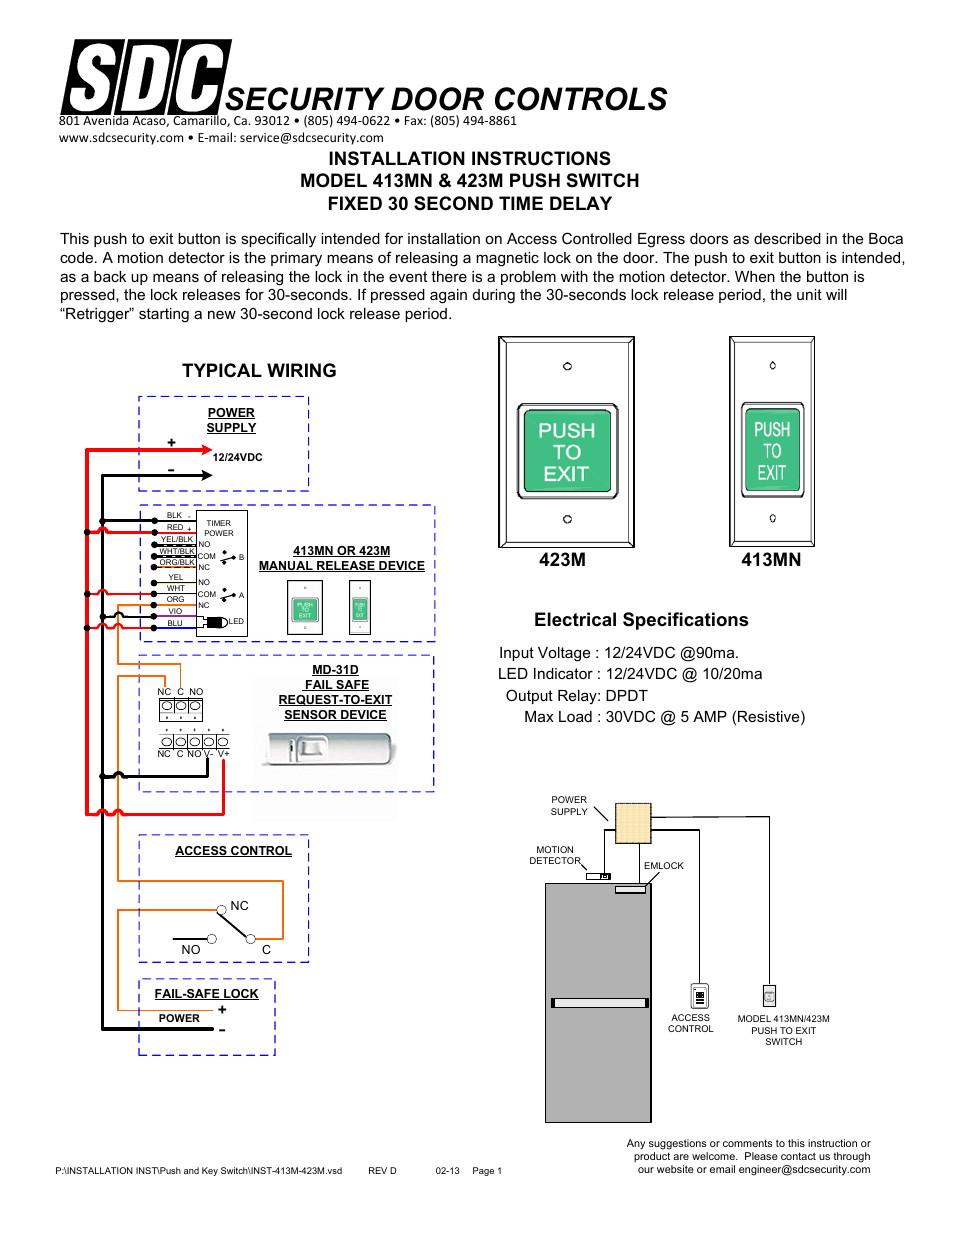 medium resolution of security door controls typical wiring electrical specifications sdc 420 series push switch user manual page 4 7